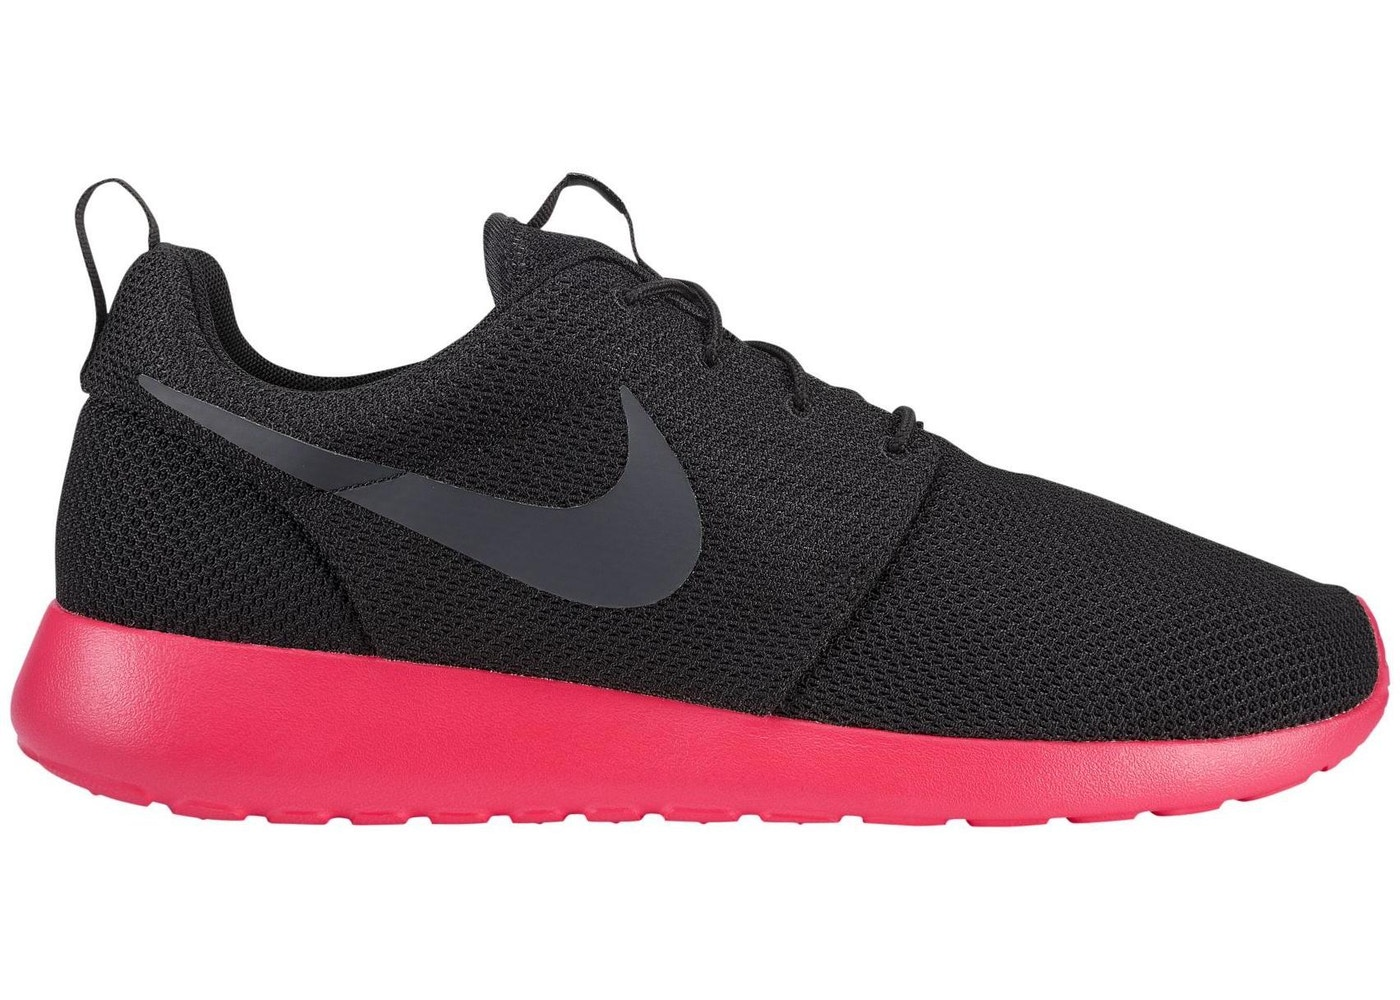 Impotencia mero Voluntario  Nike Roshe Run Anthracite Siren Red - 511881-016